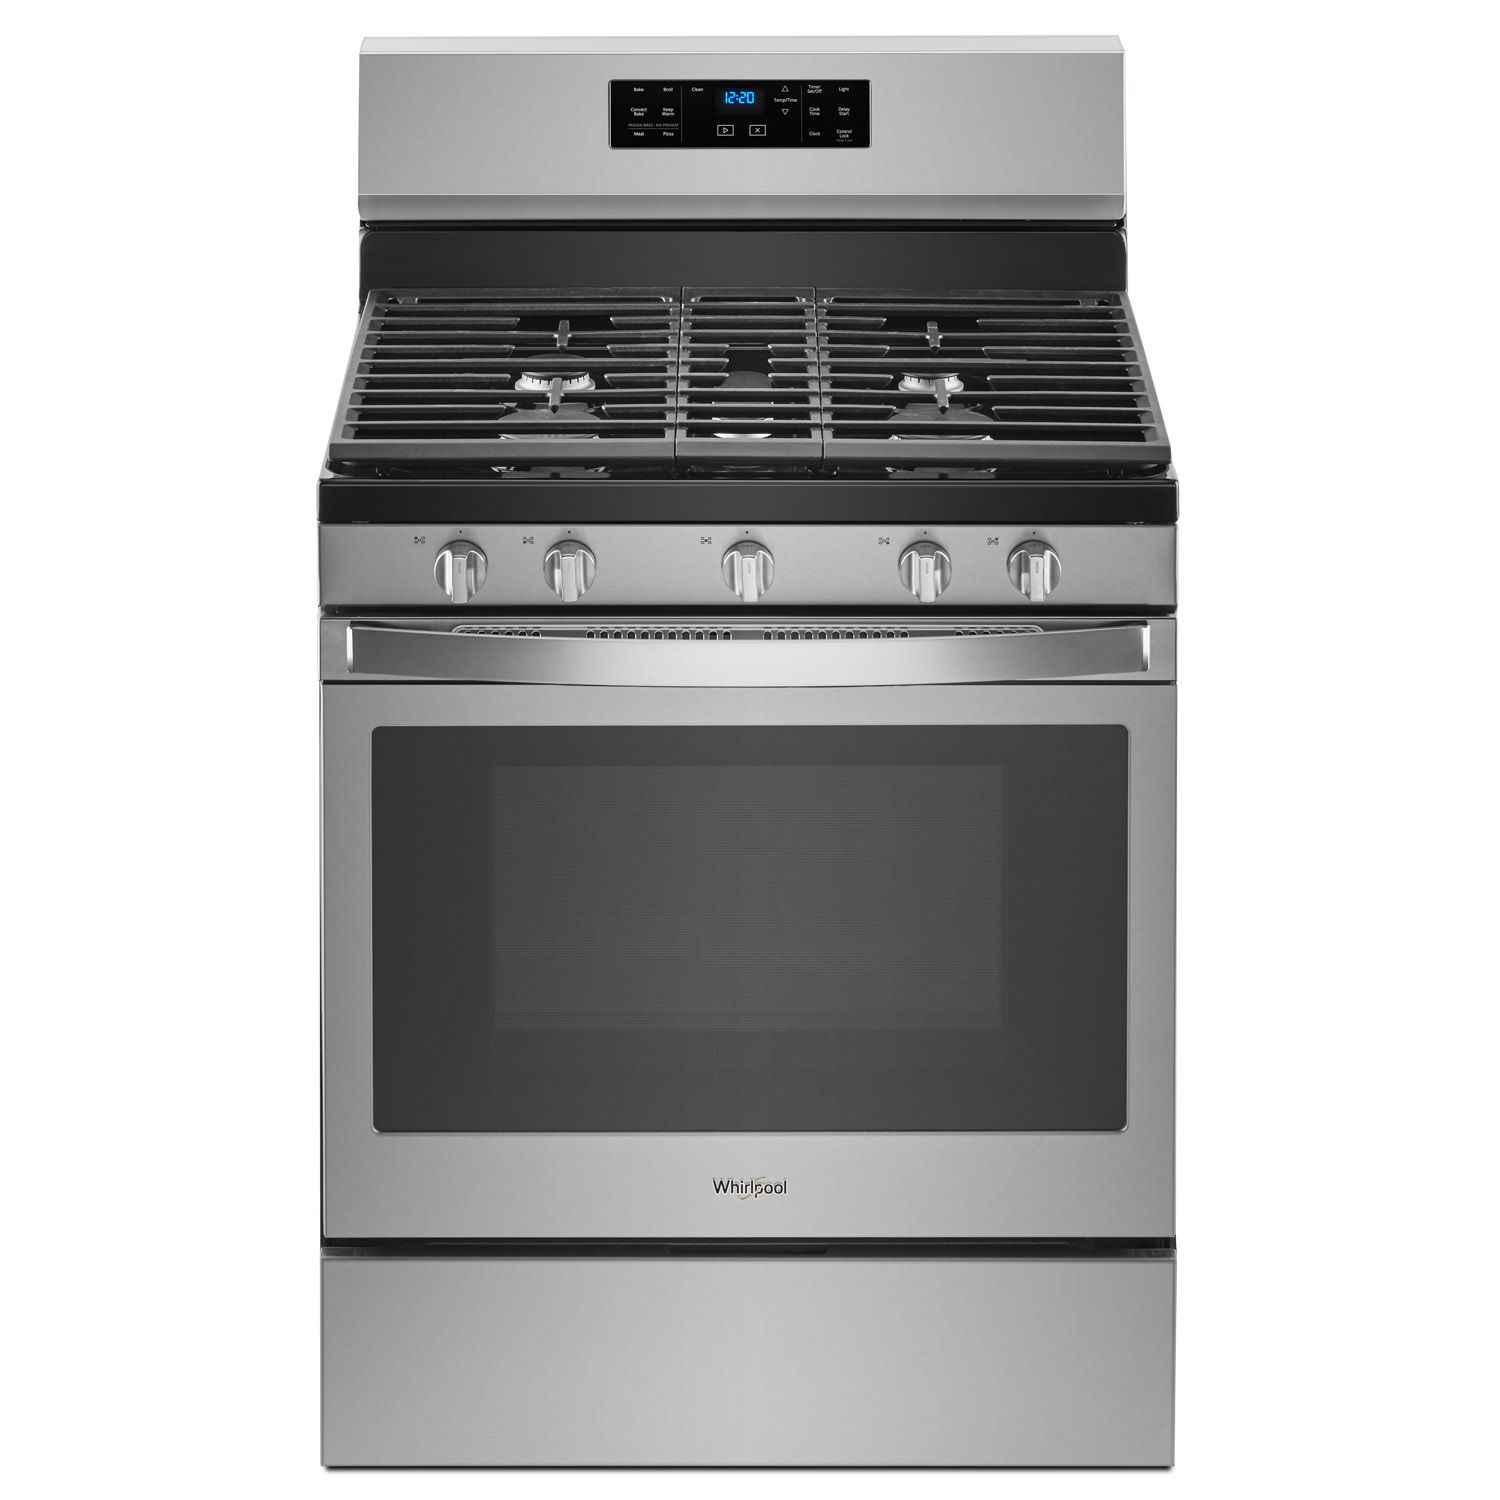 Whirlpool 30 Freestanding Gas Range Wfg550s0hz Oven Wiring Diagram Get Free Image About Stainless Steel